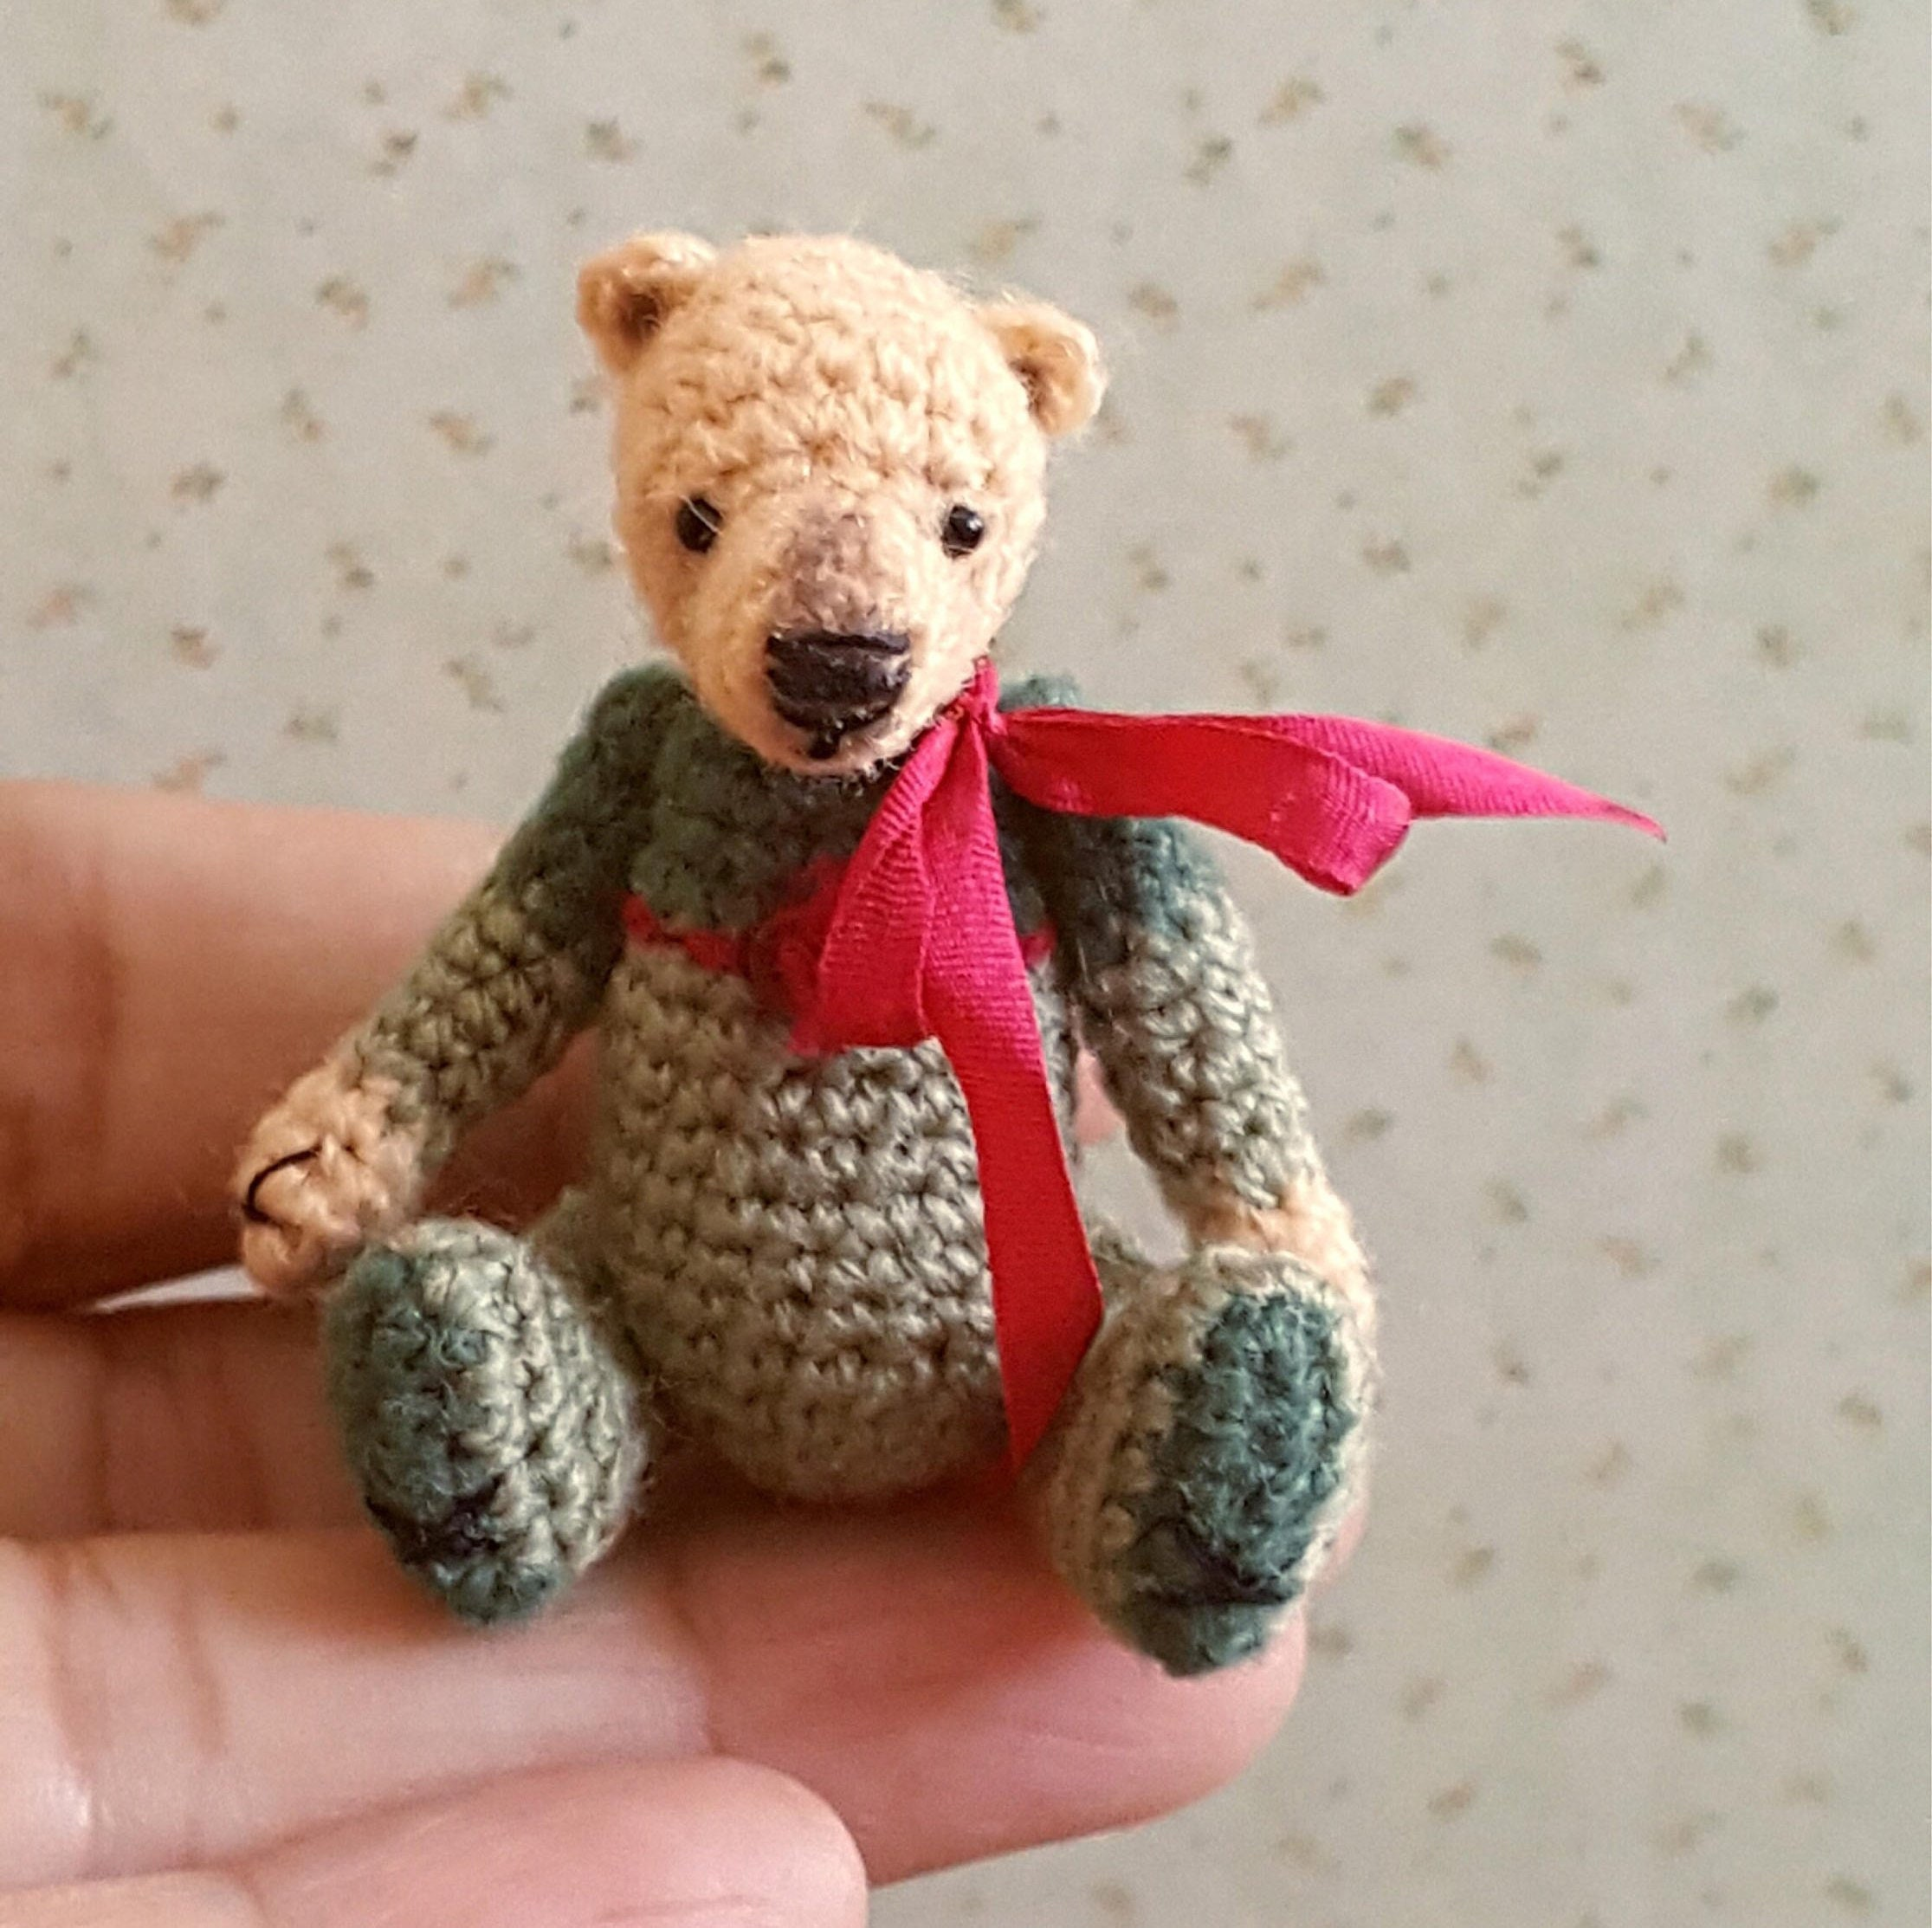 Crochet,Miniature,OOAK,Teddy,Bear,Toys,teddy_bear,miniature,crochet,bear,amigurumi,artist_bear,IGMA,dollhouse,collectible,orsetto,orso,uncinetto,stuffing,punch thread,sewing thread